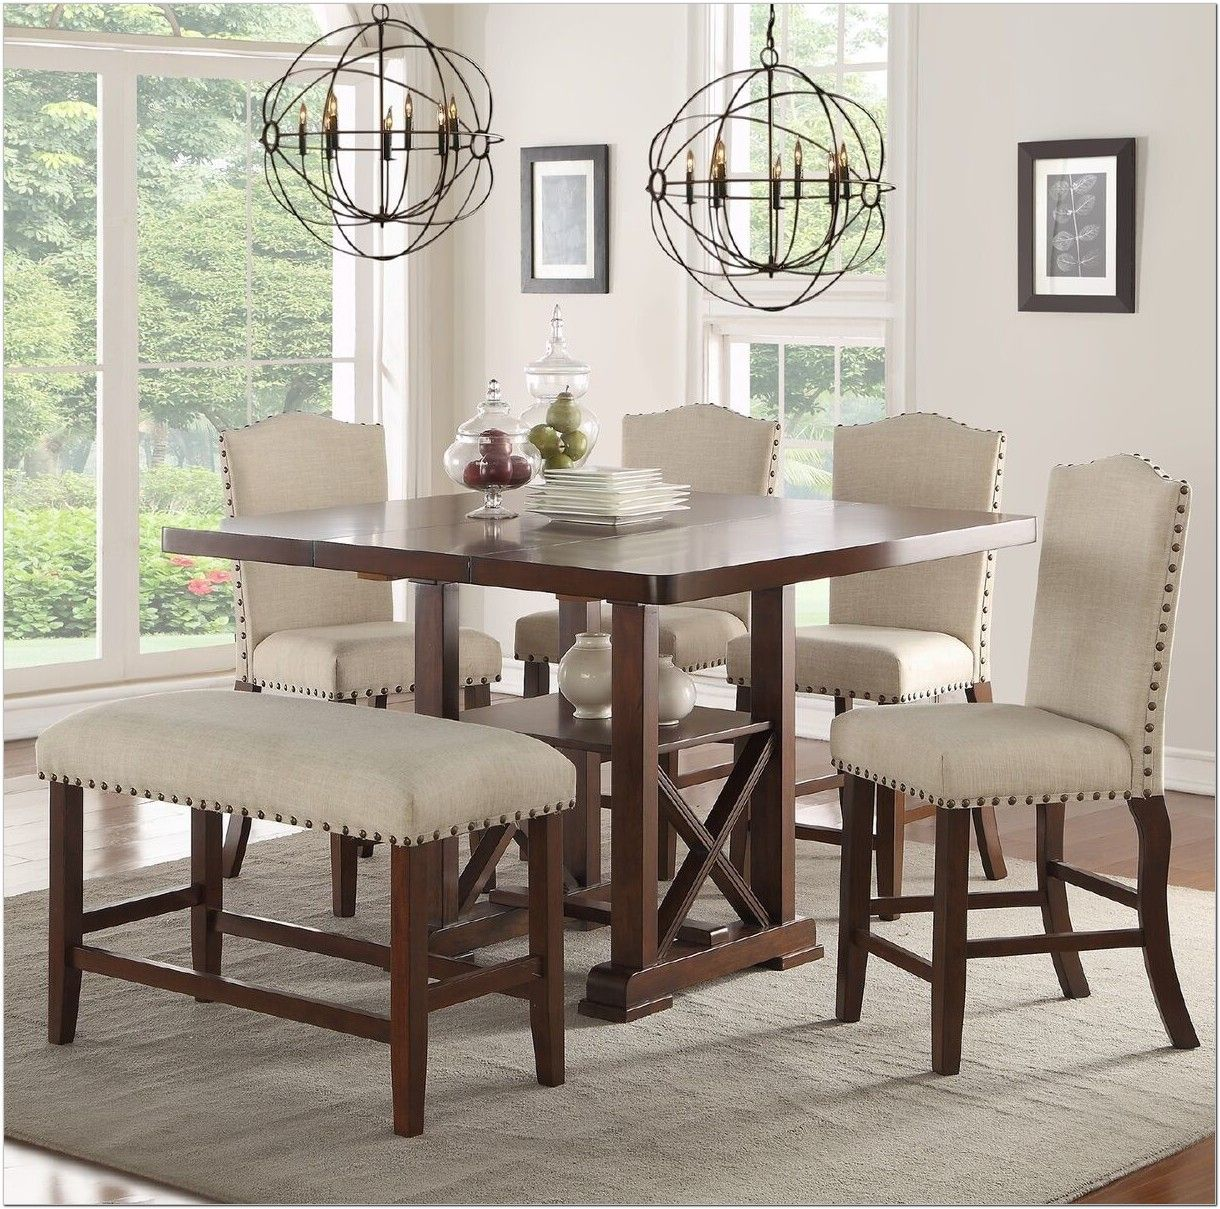 6 Piece Counter Height Dining Set With Bench Modern Dining Room